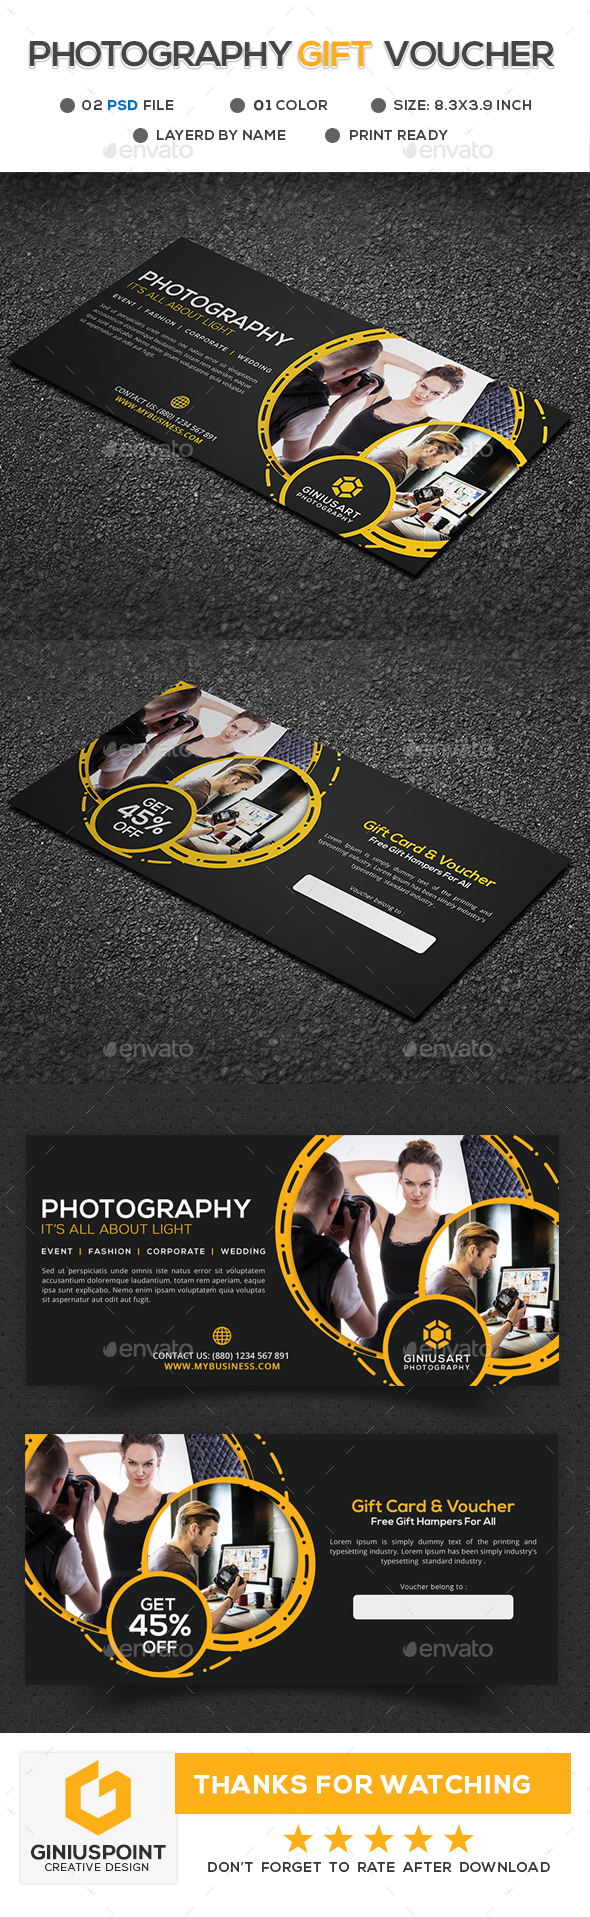 GraphicRiver Photography Gift Voucher 20649386